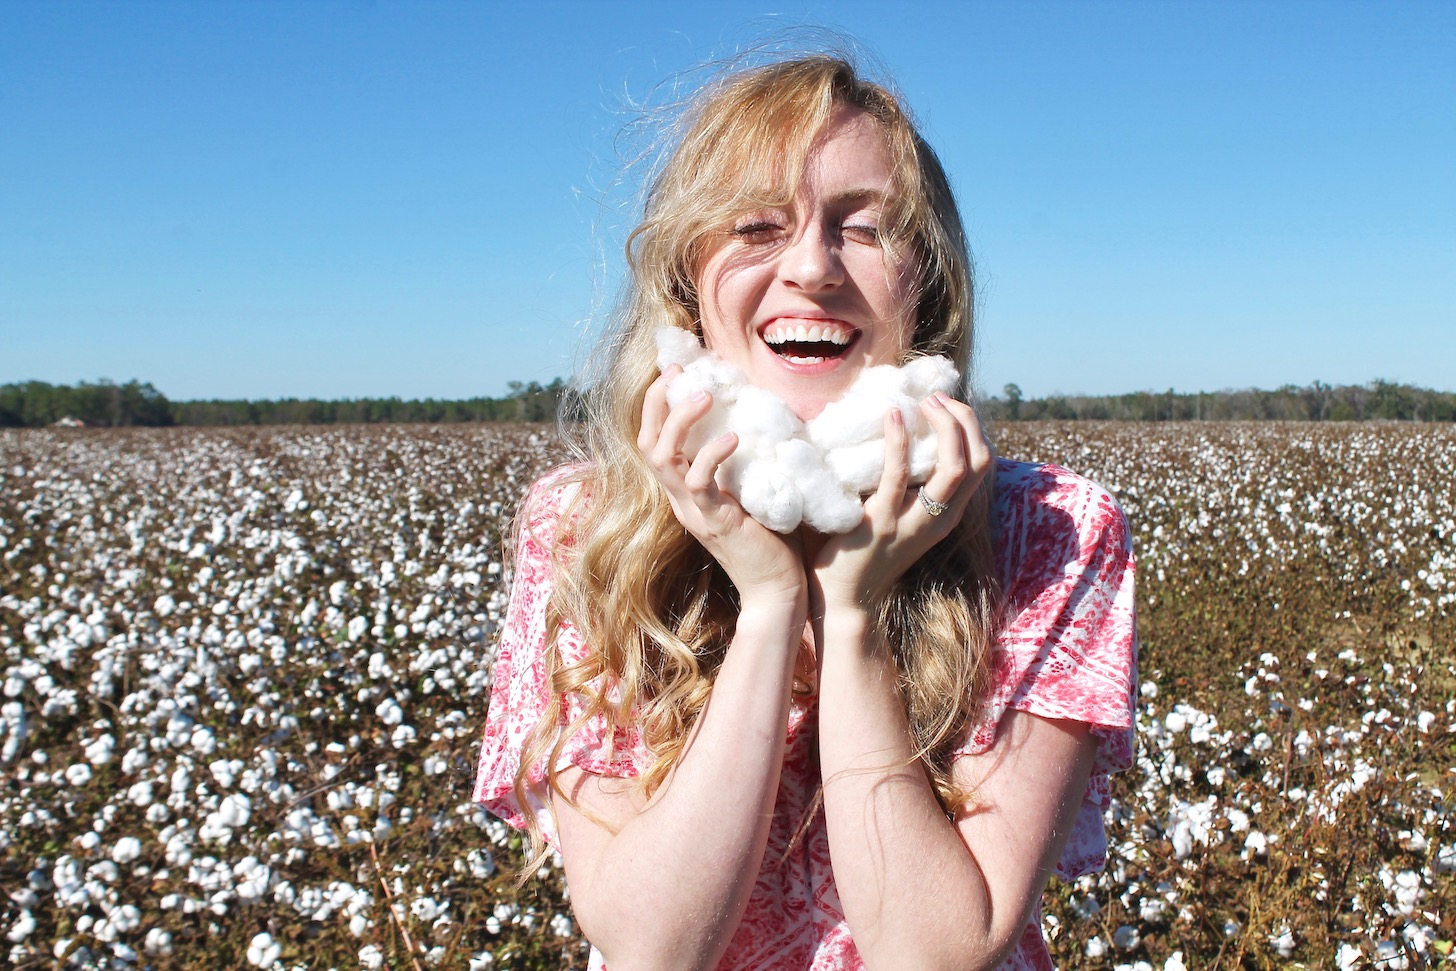 A photoshoot in Alabama's cotton fields. So picturesque!